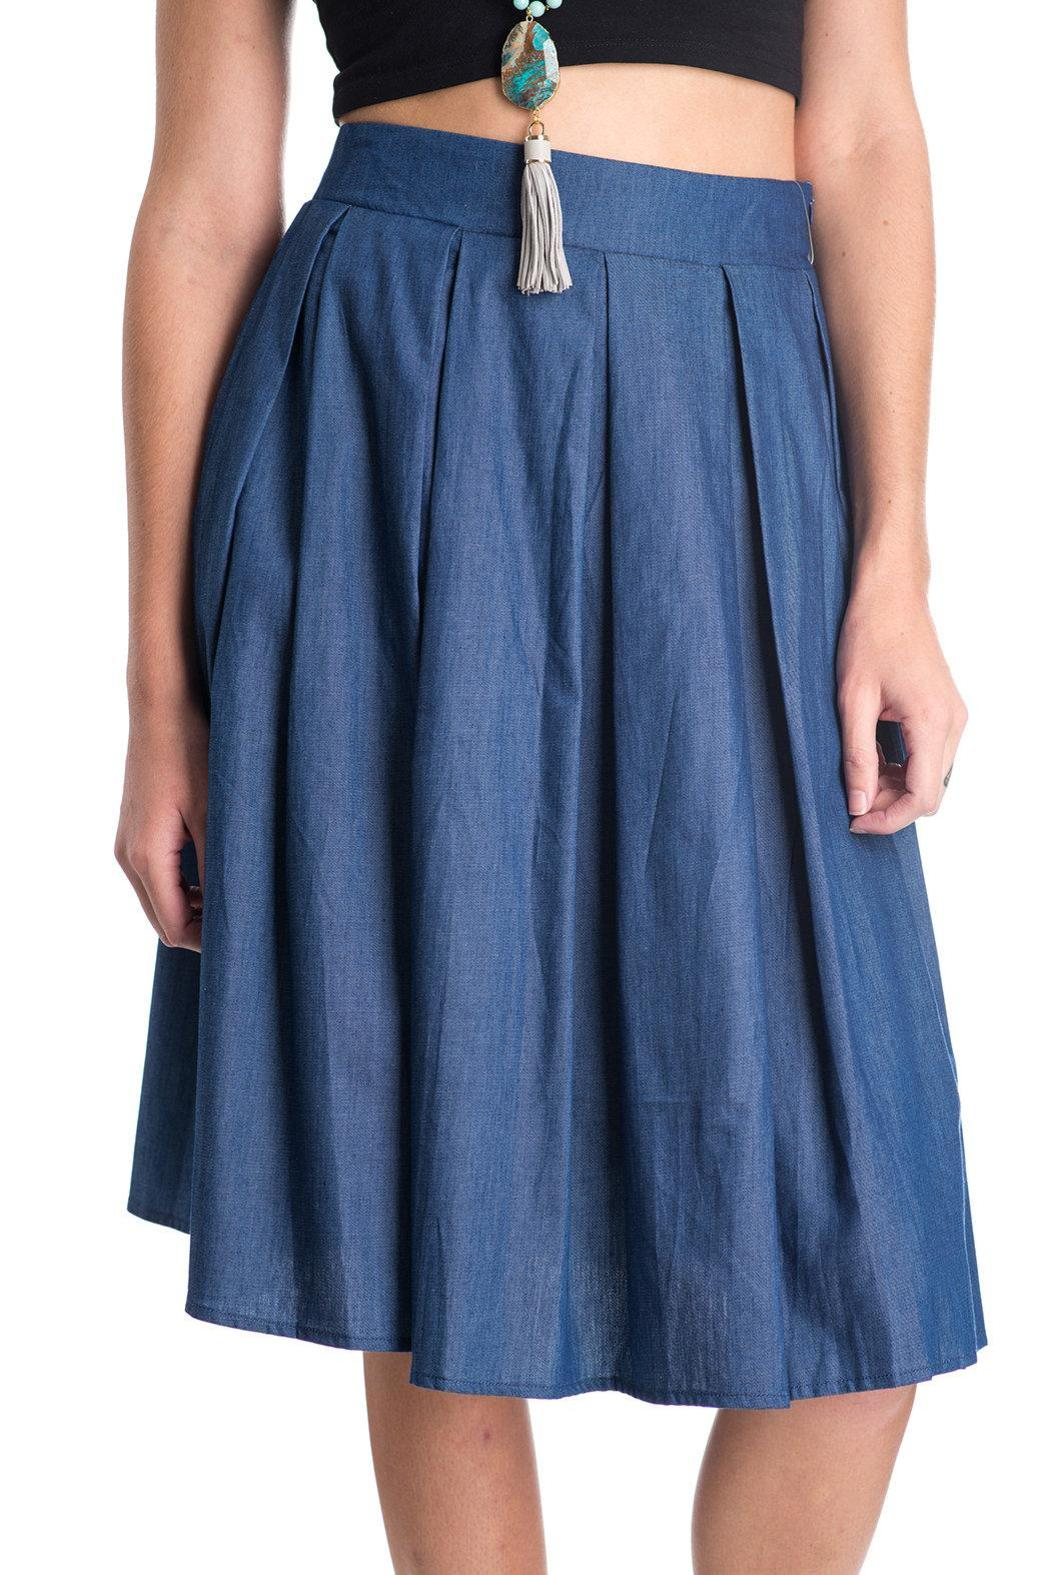 Comme Toi Denim A-Line Skirt from Florida by Crowder's Gifts ...